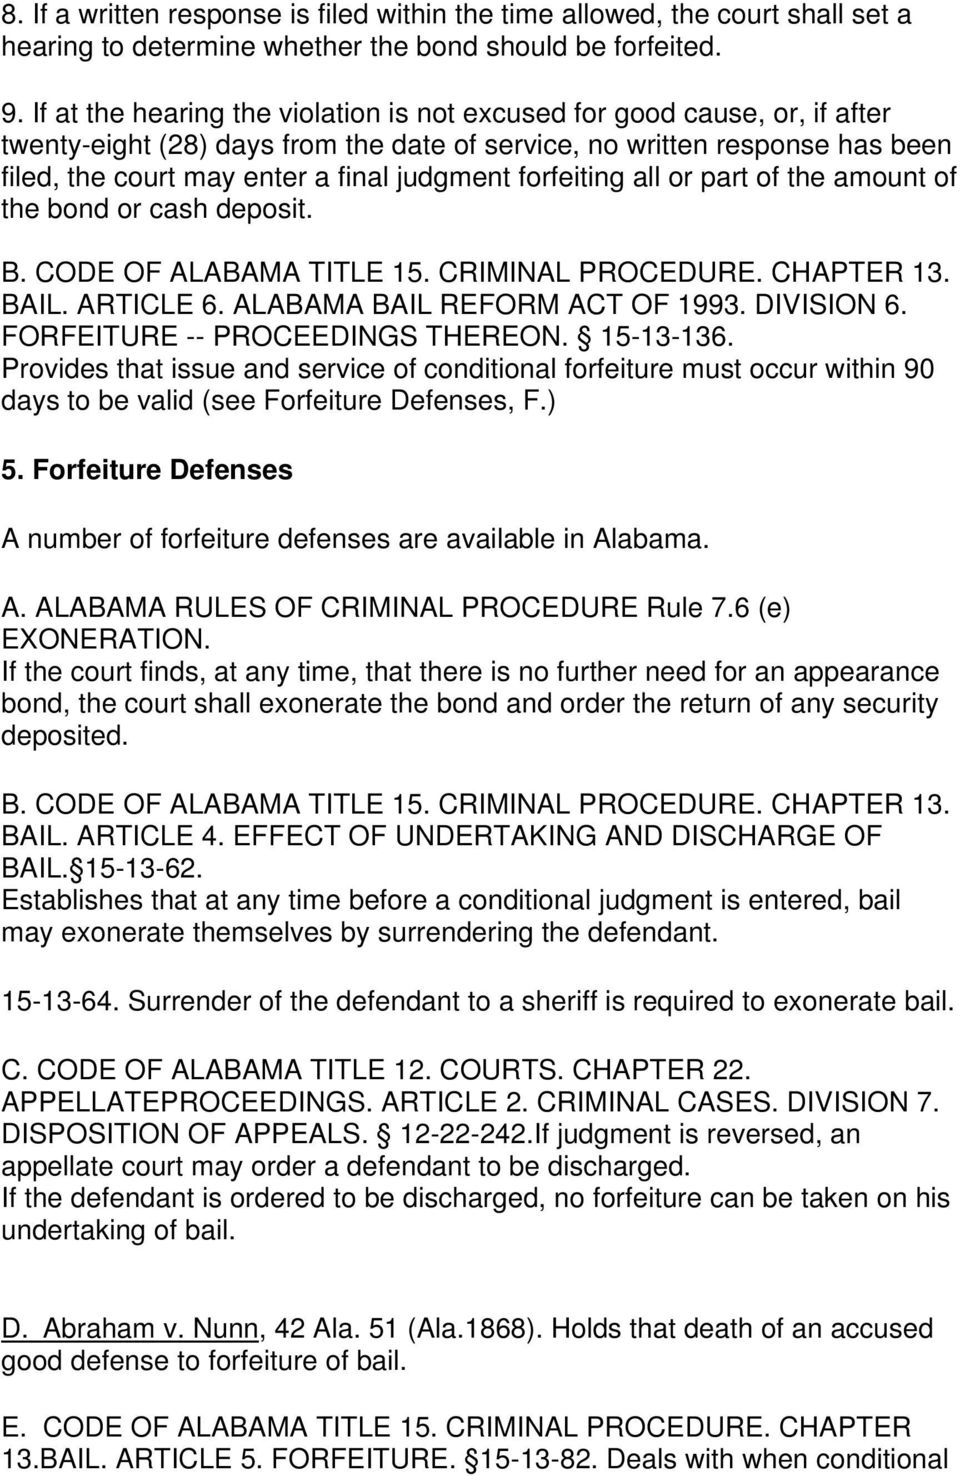 forfeiting all or part of the amount of the bond or cash deposit. B. CODE OF ALABAMA TITLE 15. CRIMINAL PROCEDURE. CHAPTER 13. BAIL. ARTICLE 6. ALABAMA BAIL REFORM ACT OF 1993. DIVISION 6.